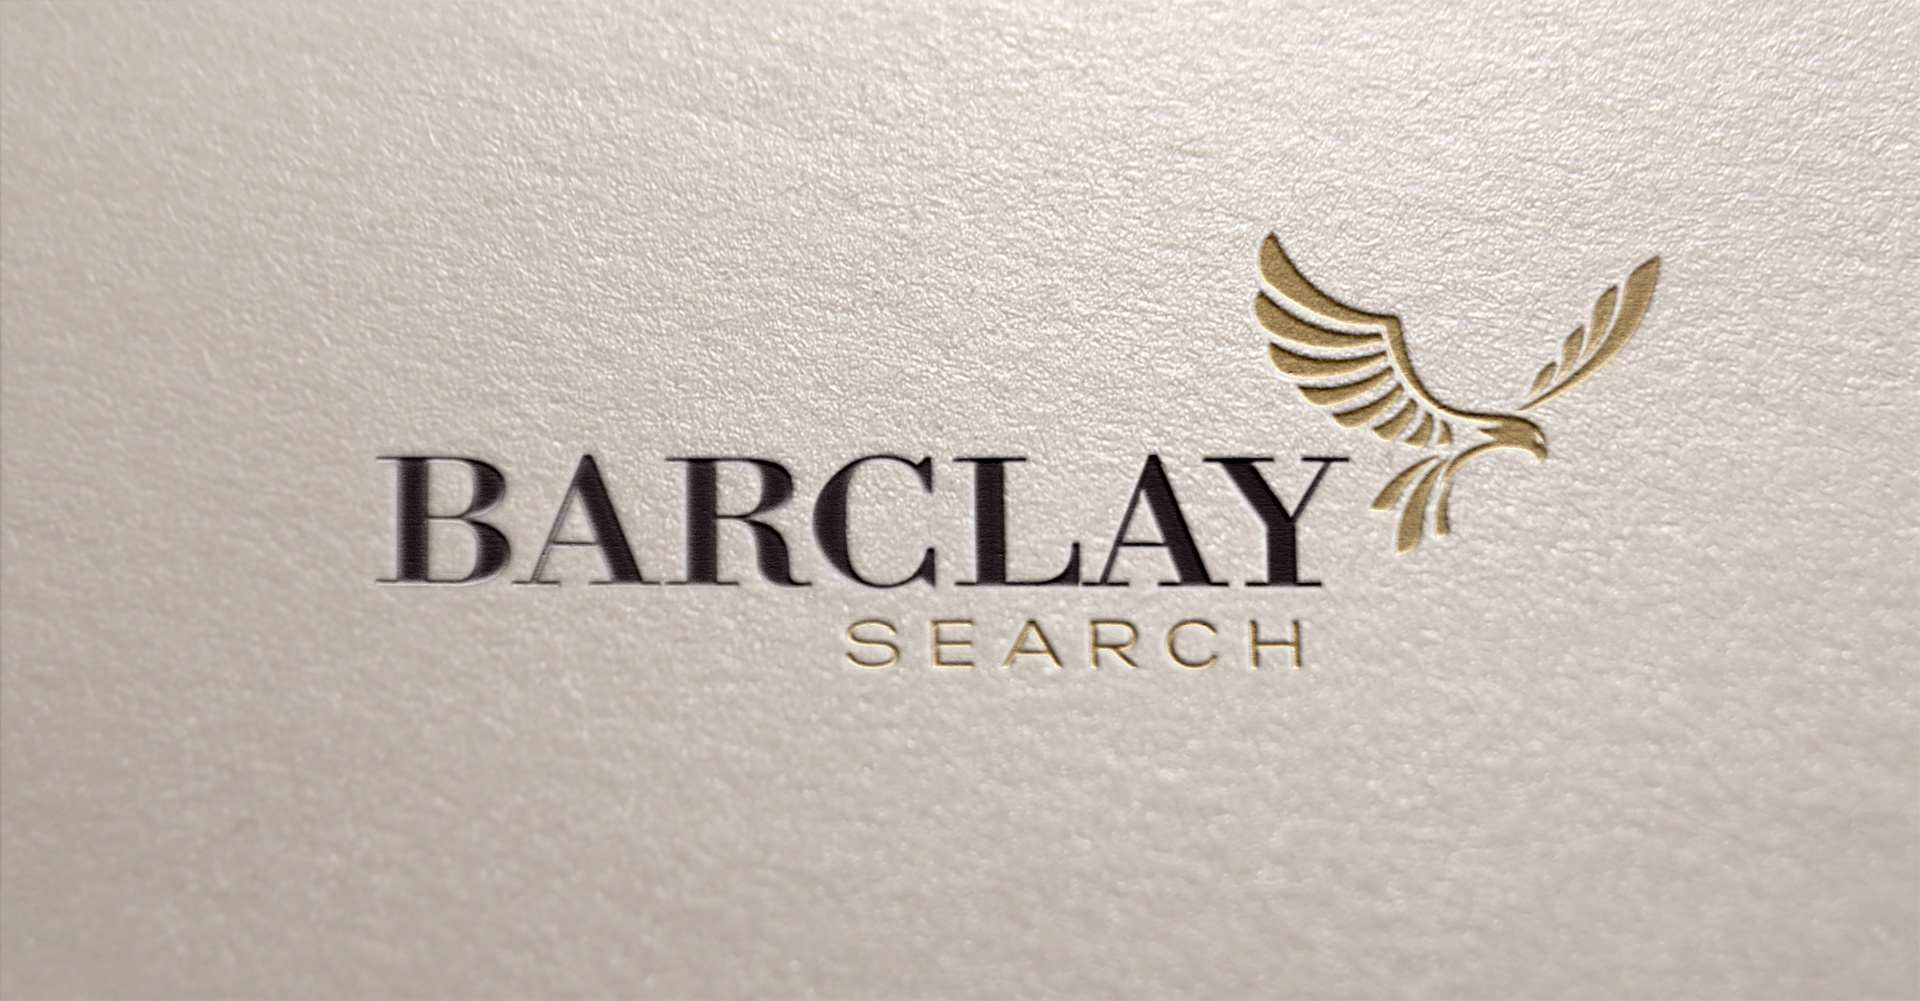 Barclay Search